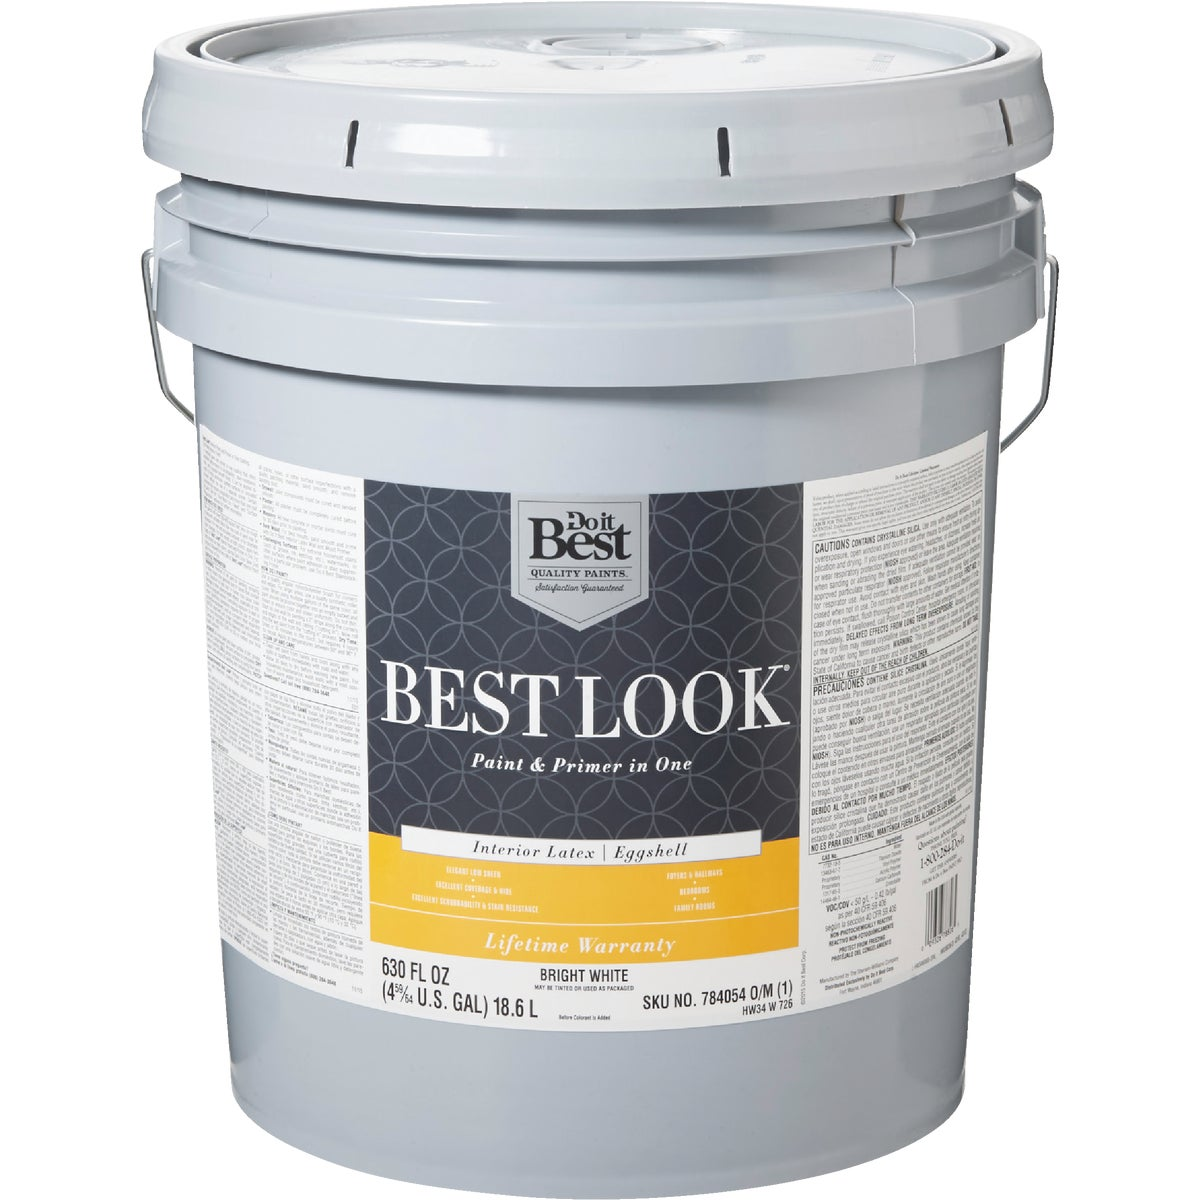 INT EGG BRIGHT WHT PAINT - HW34W0726-20 by Do it Best